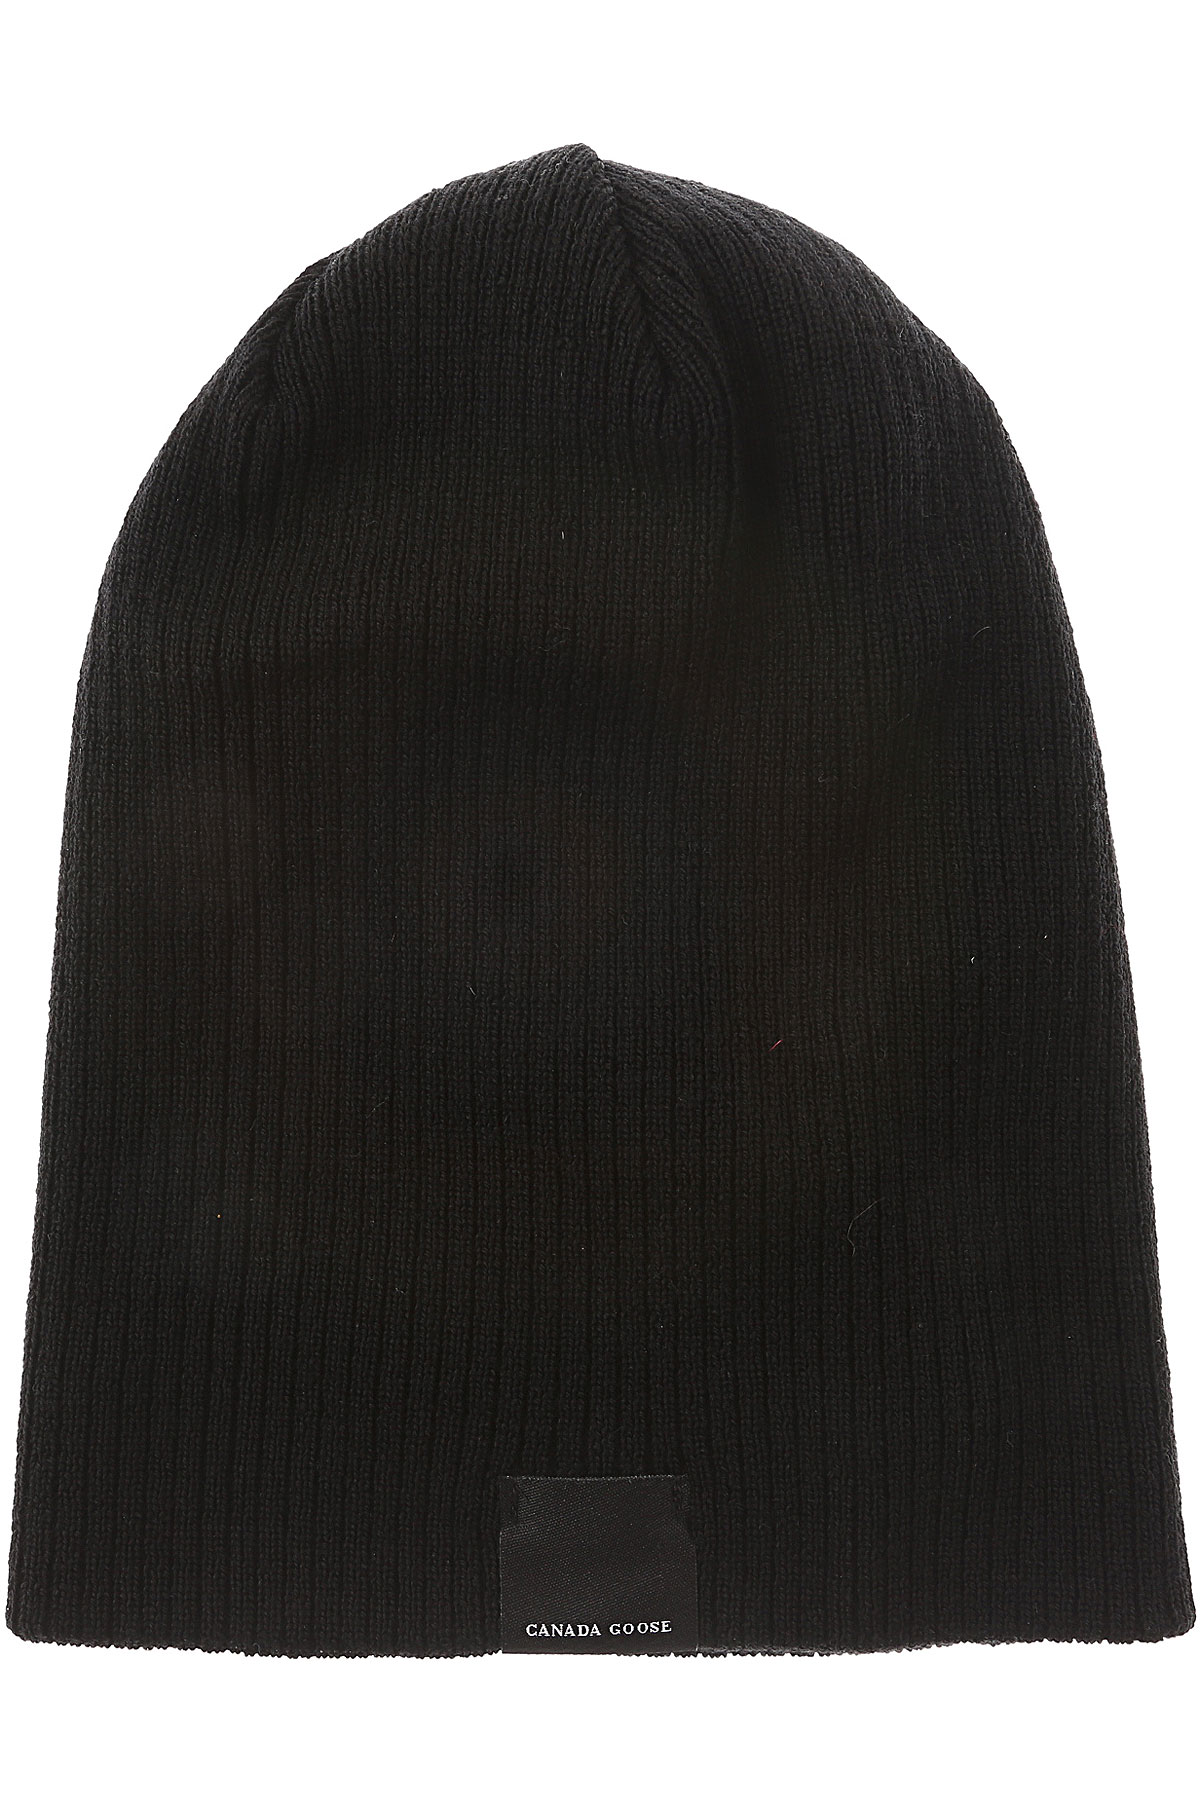 Image of Canada Goose Hat for Women On Sale in Outlet, Black, merino wool, 2017